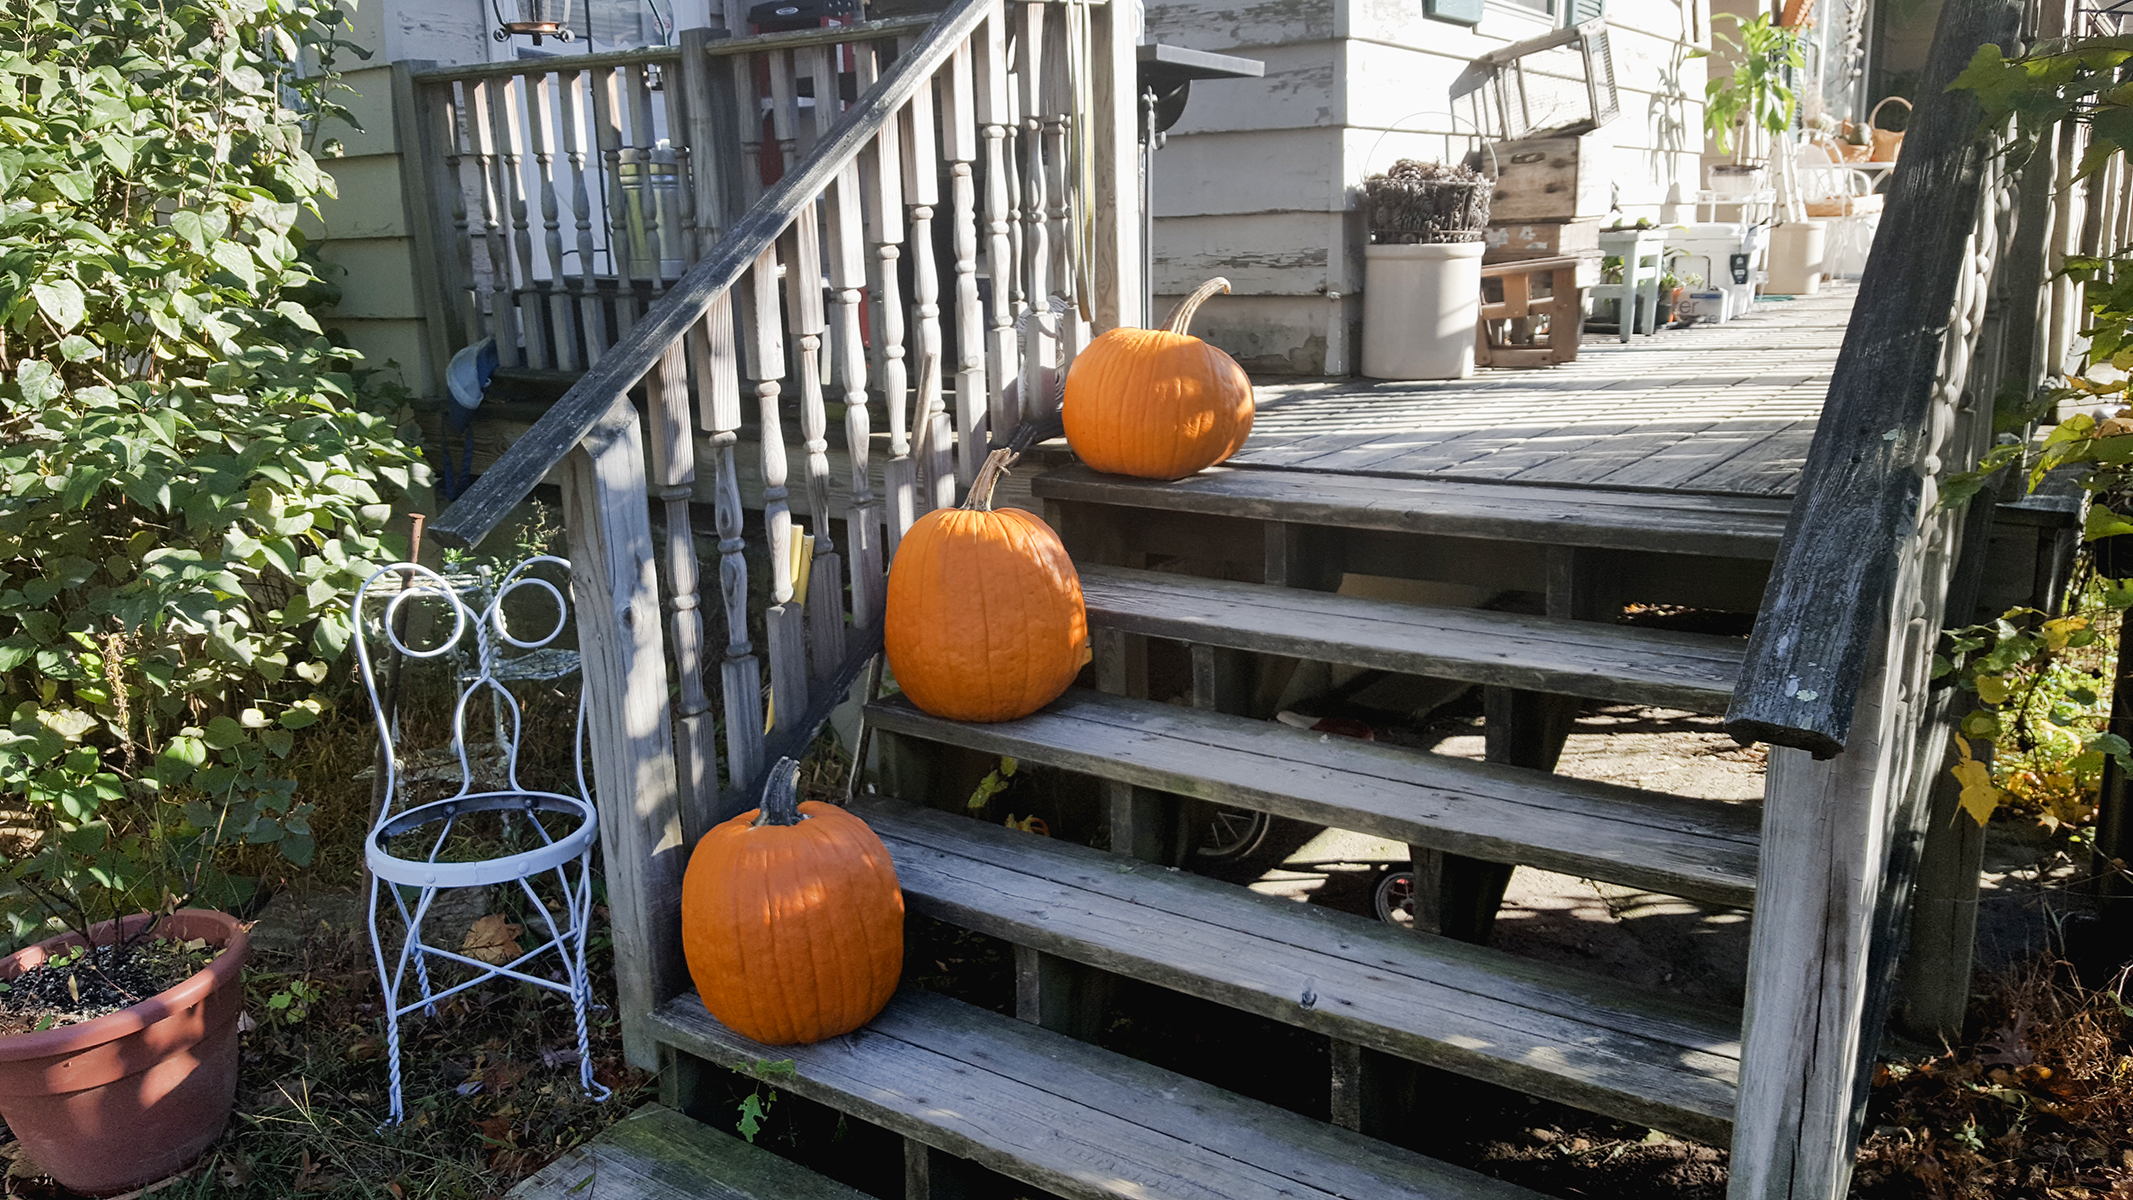 hudson valley fall 2019 upstate new york - pumpkins